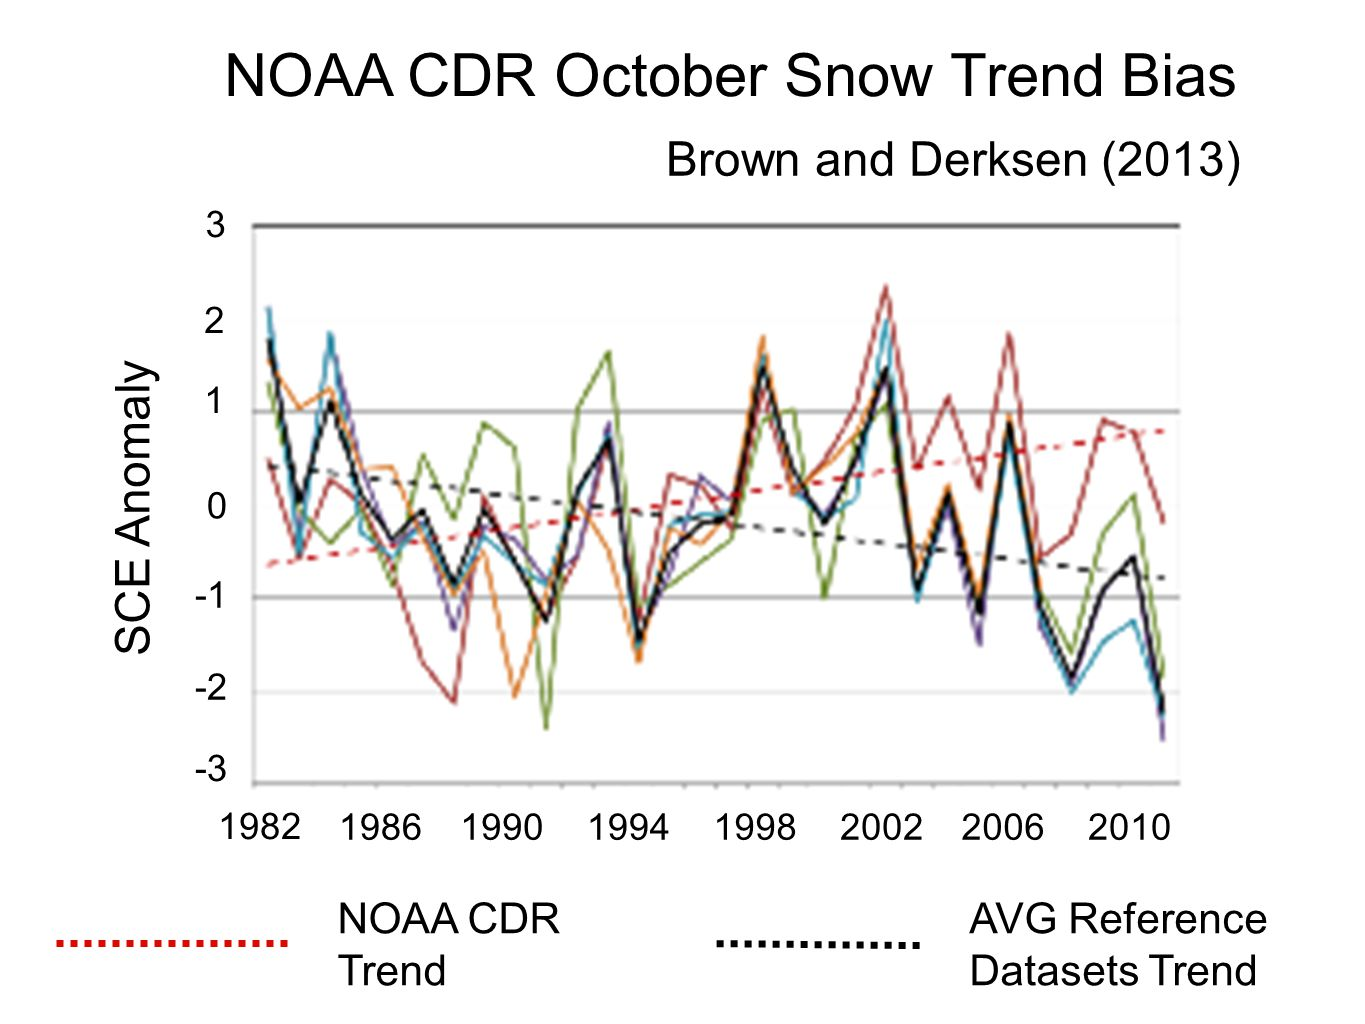 NOAA CDR October Snow Trend Bias